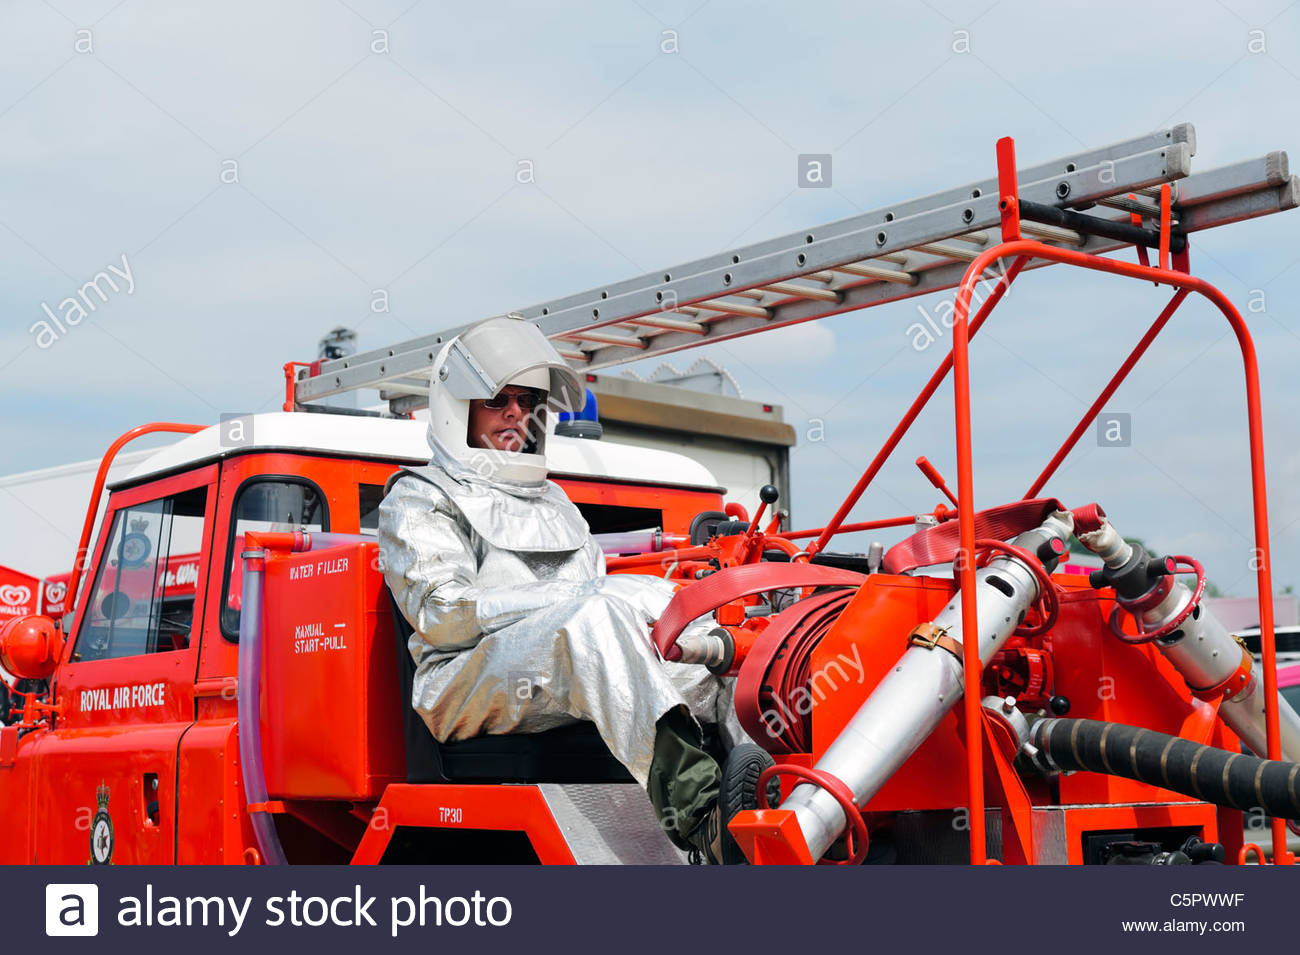 73b883c76dfa RAF fire fighter wearing silver fireproof suit